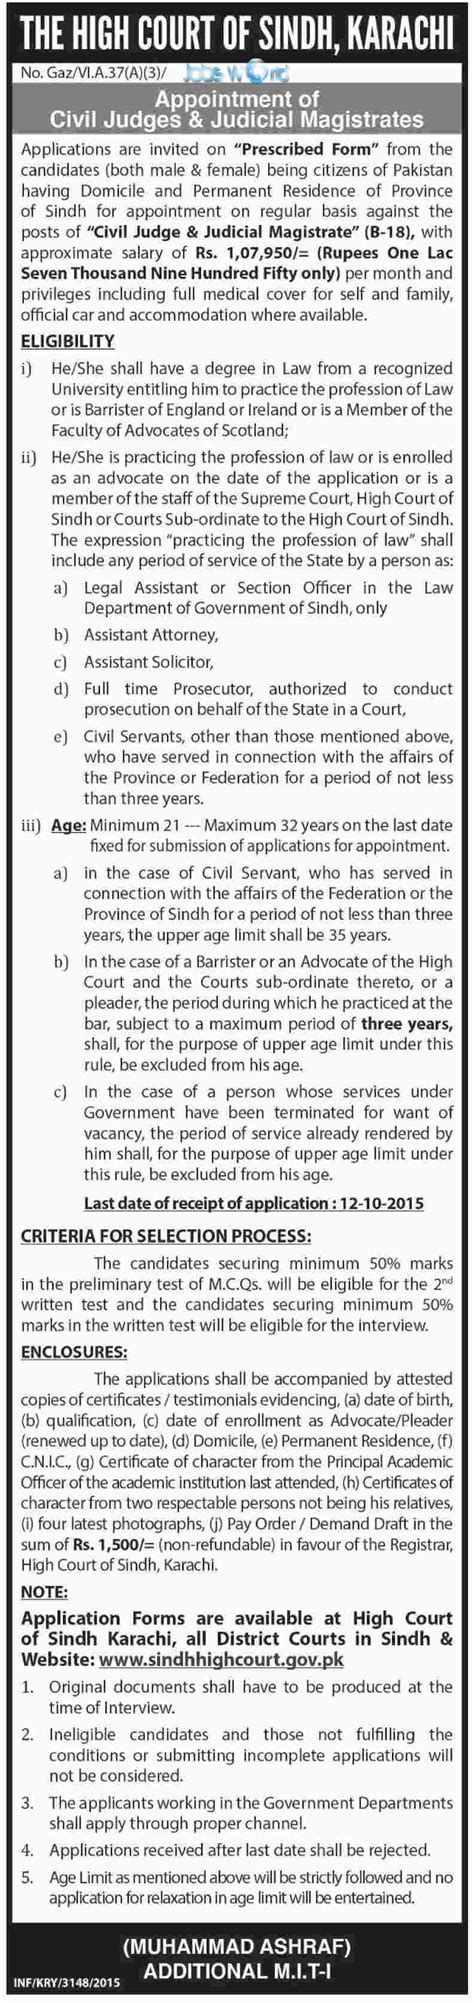 Sindh High Court Search High Court Of Sindh Civil Judges Judicial Magistrates Opportunity 2015 Jobsworld